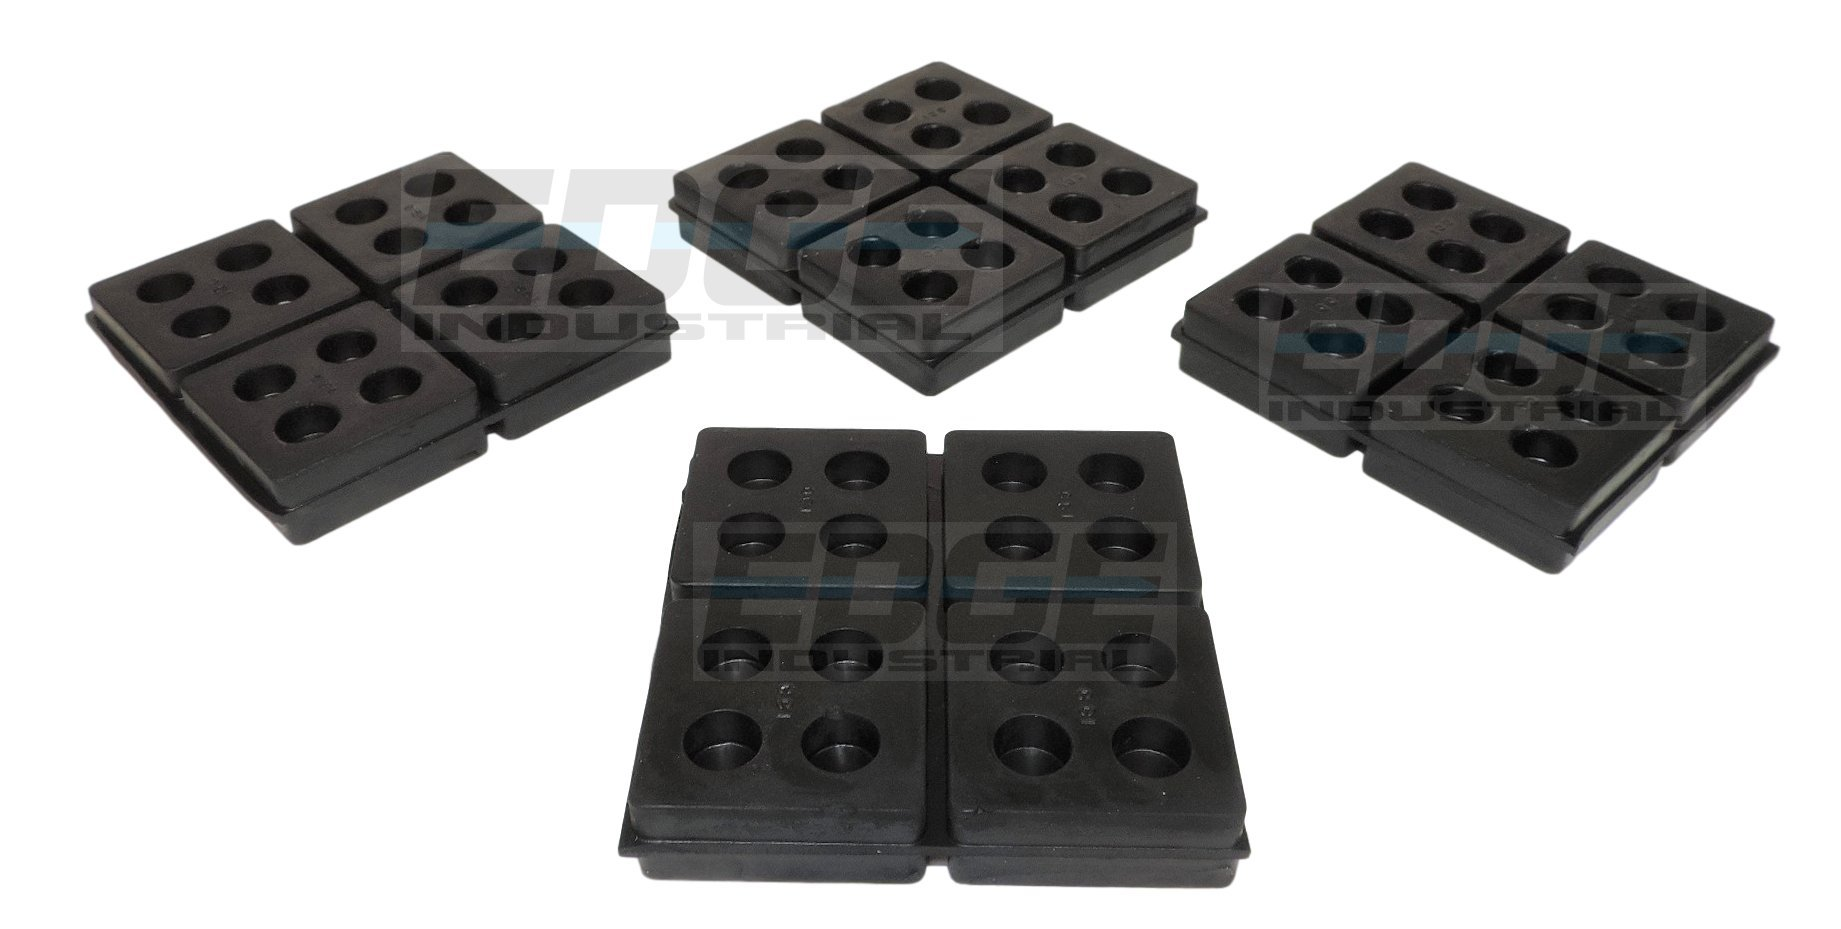 HEAVY DUTY ANTI VIBRATION ISOLATION PADS 4'' X 4'' X 3/4'' ALL RUBBER WAFFLE TYPE, QUANTITY 4